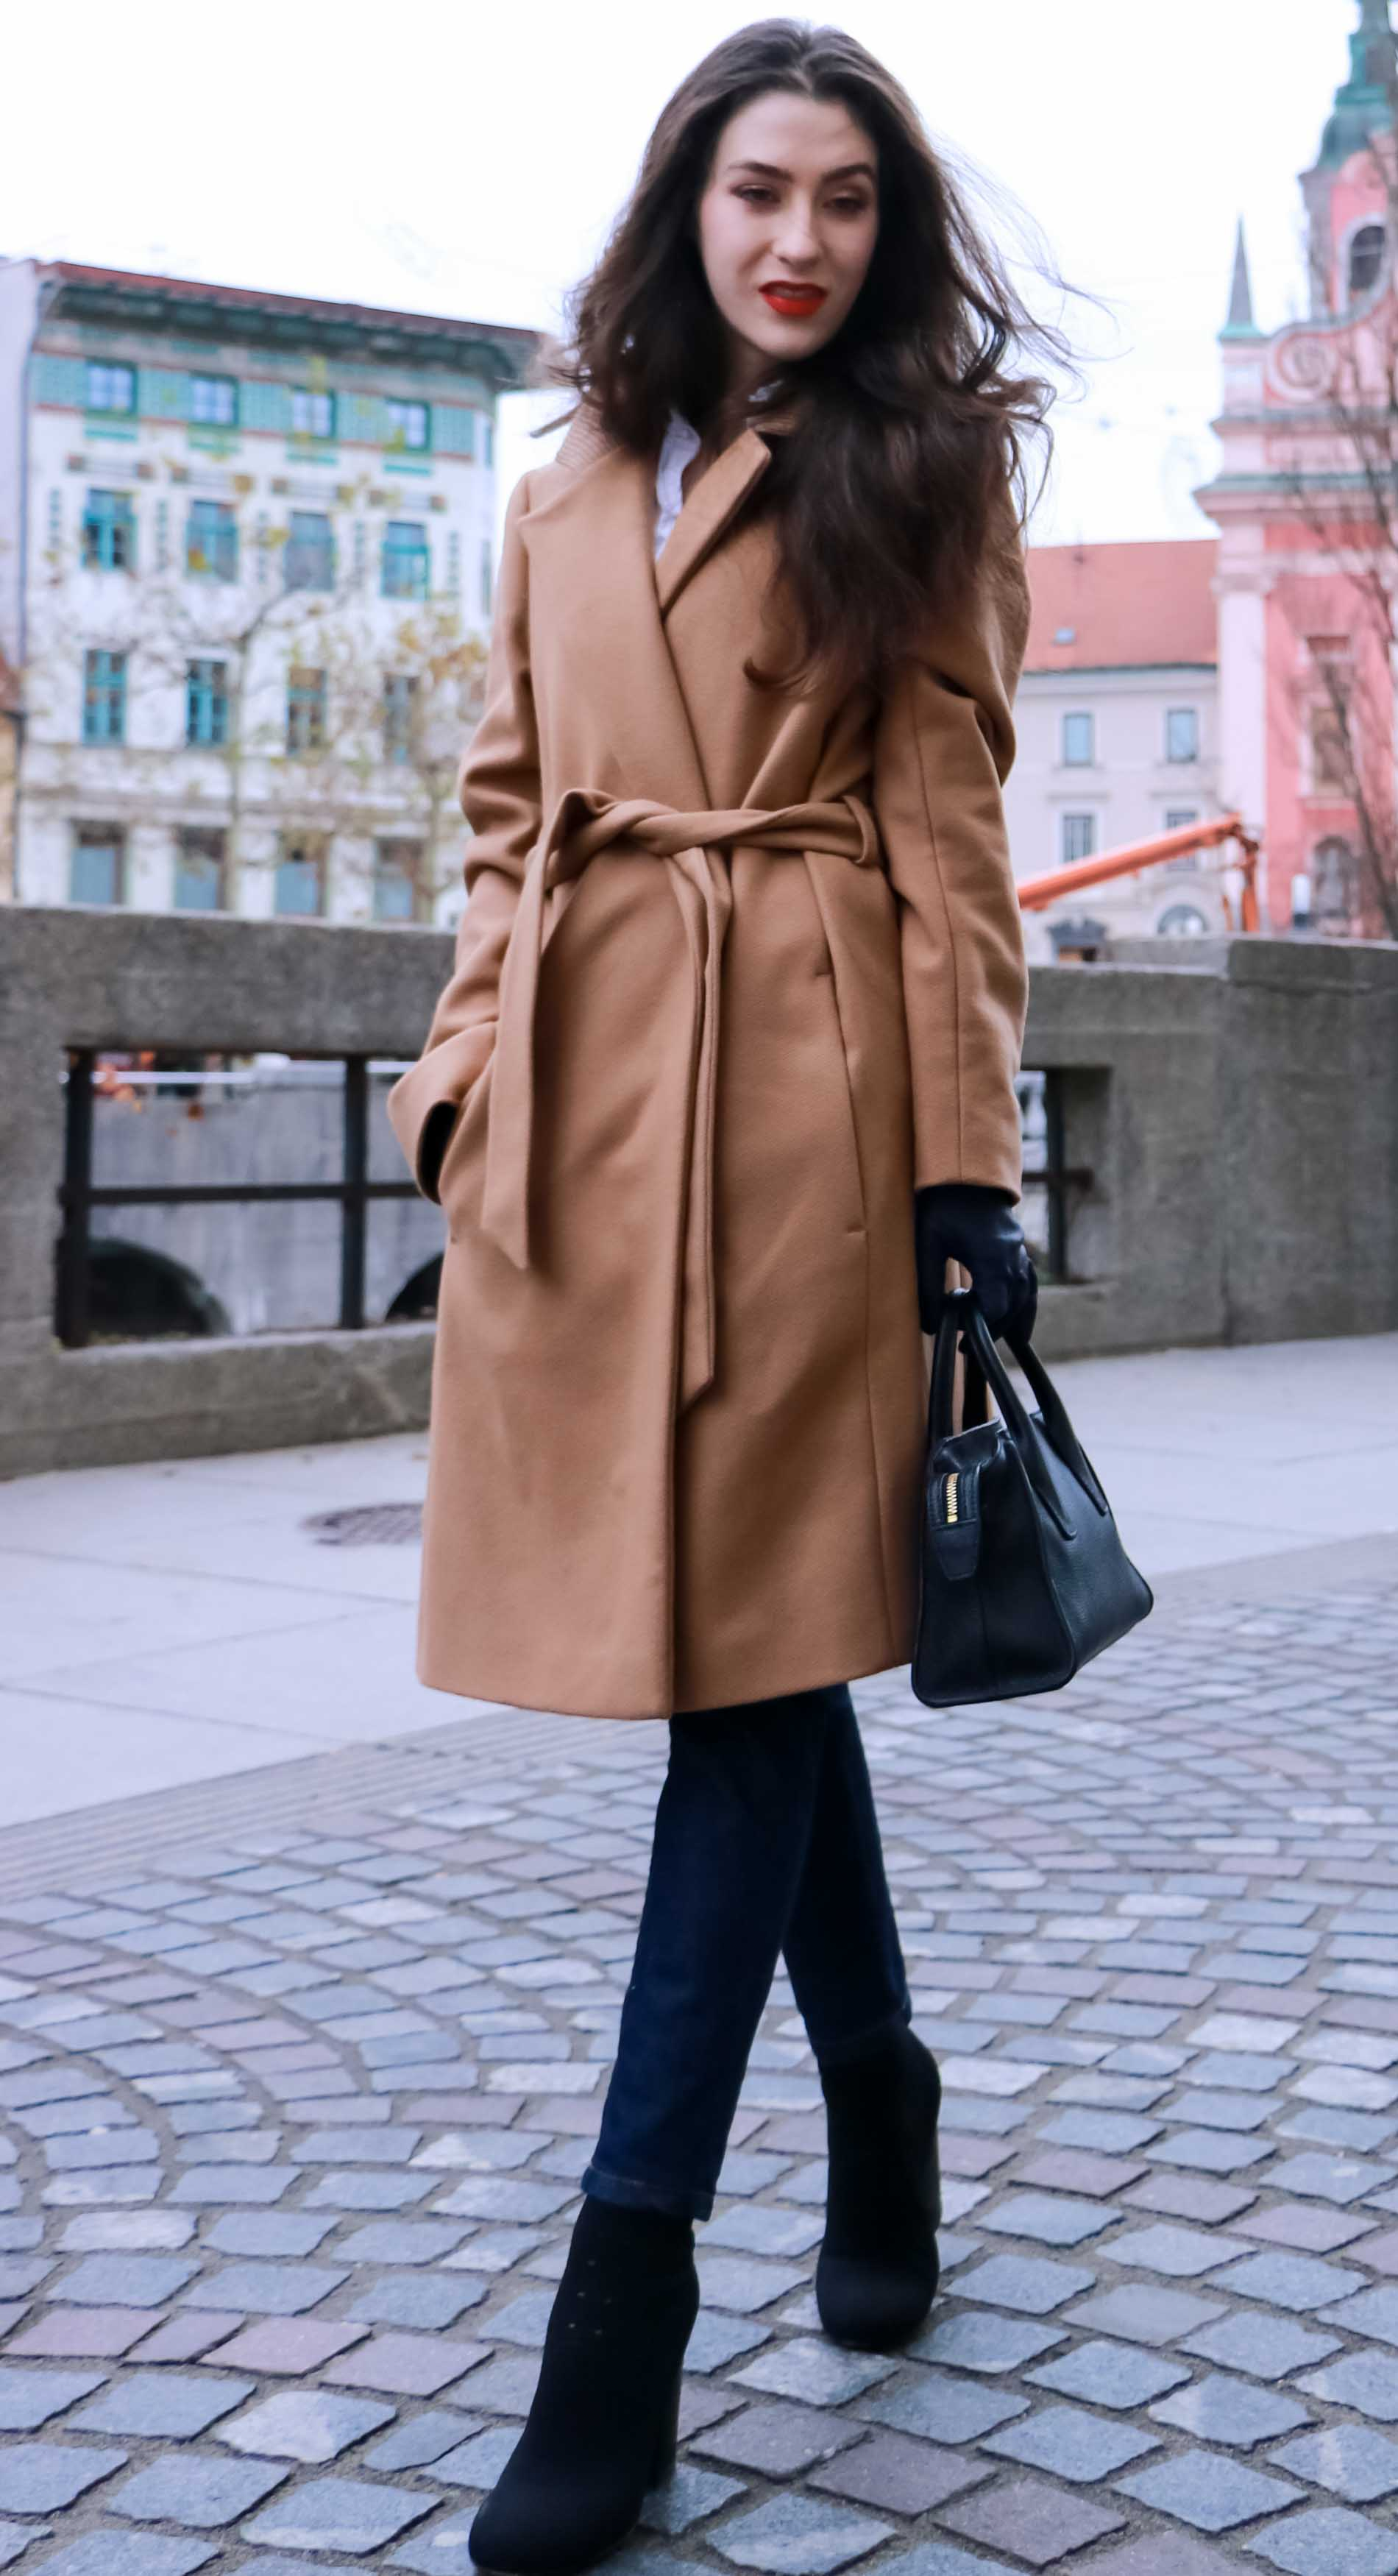 Fashion Blogger Veronika Lipar of Brunette from Wall Street wearing camel wrap coat from Escada, tapered dark denim jeans from A.P.C., small black top handle bag, blue leather gloves and red lipstick, business casual outfit for work, while walking down the street in Ljubljana